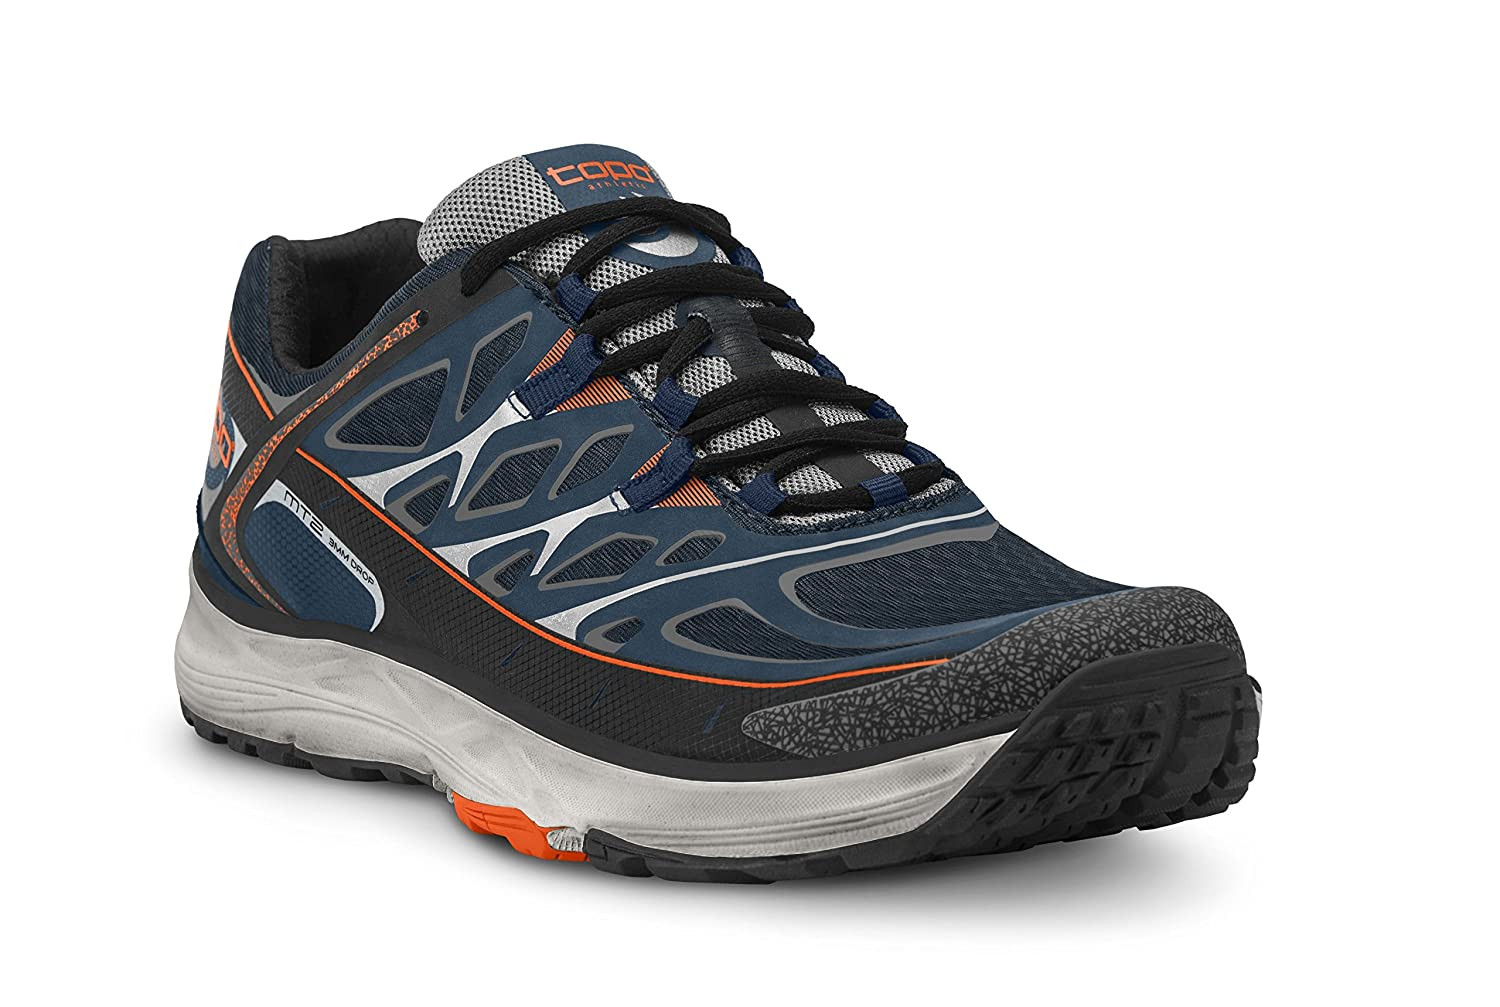 Topo Athletic MT2 Running Shoe - Men's B06XPTT12T 7 D(M) US|Navy/Grey